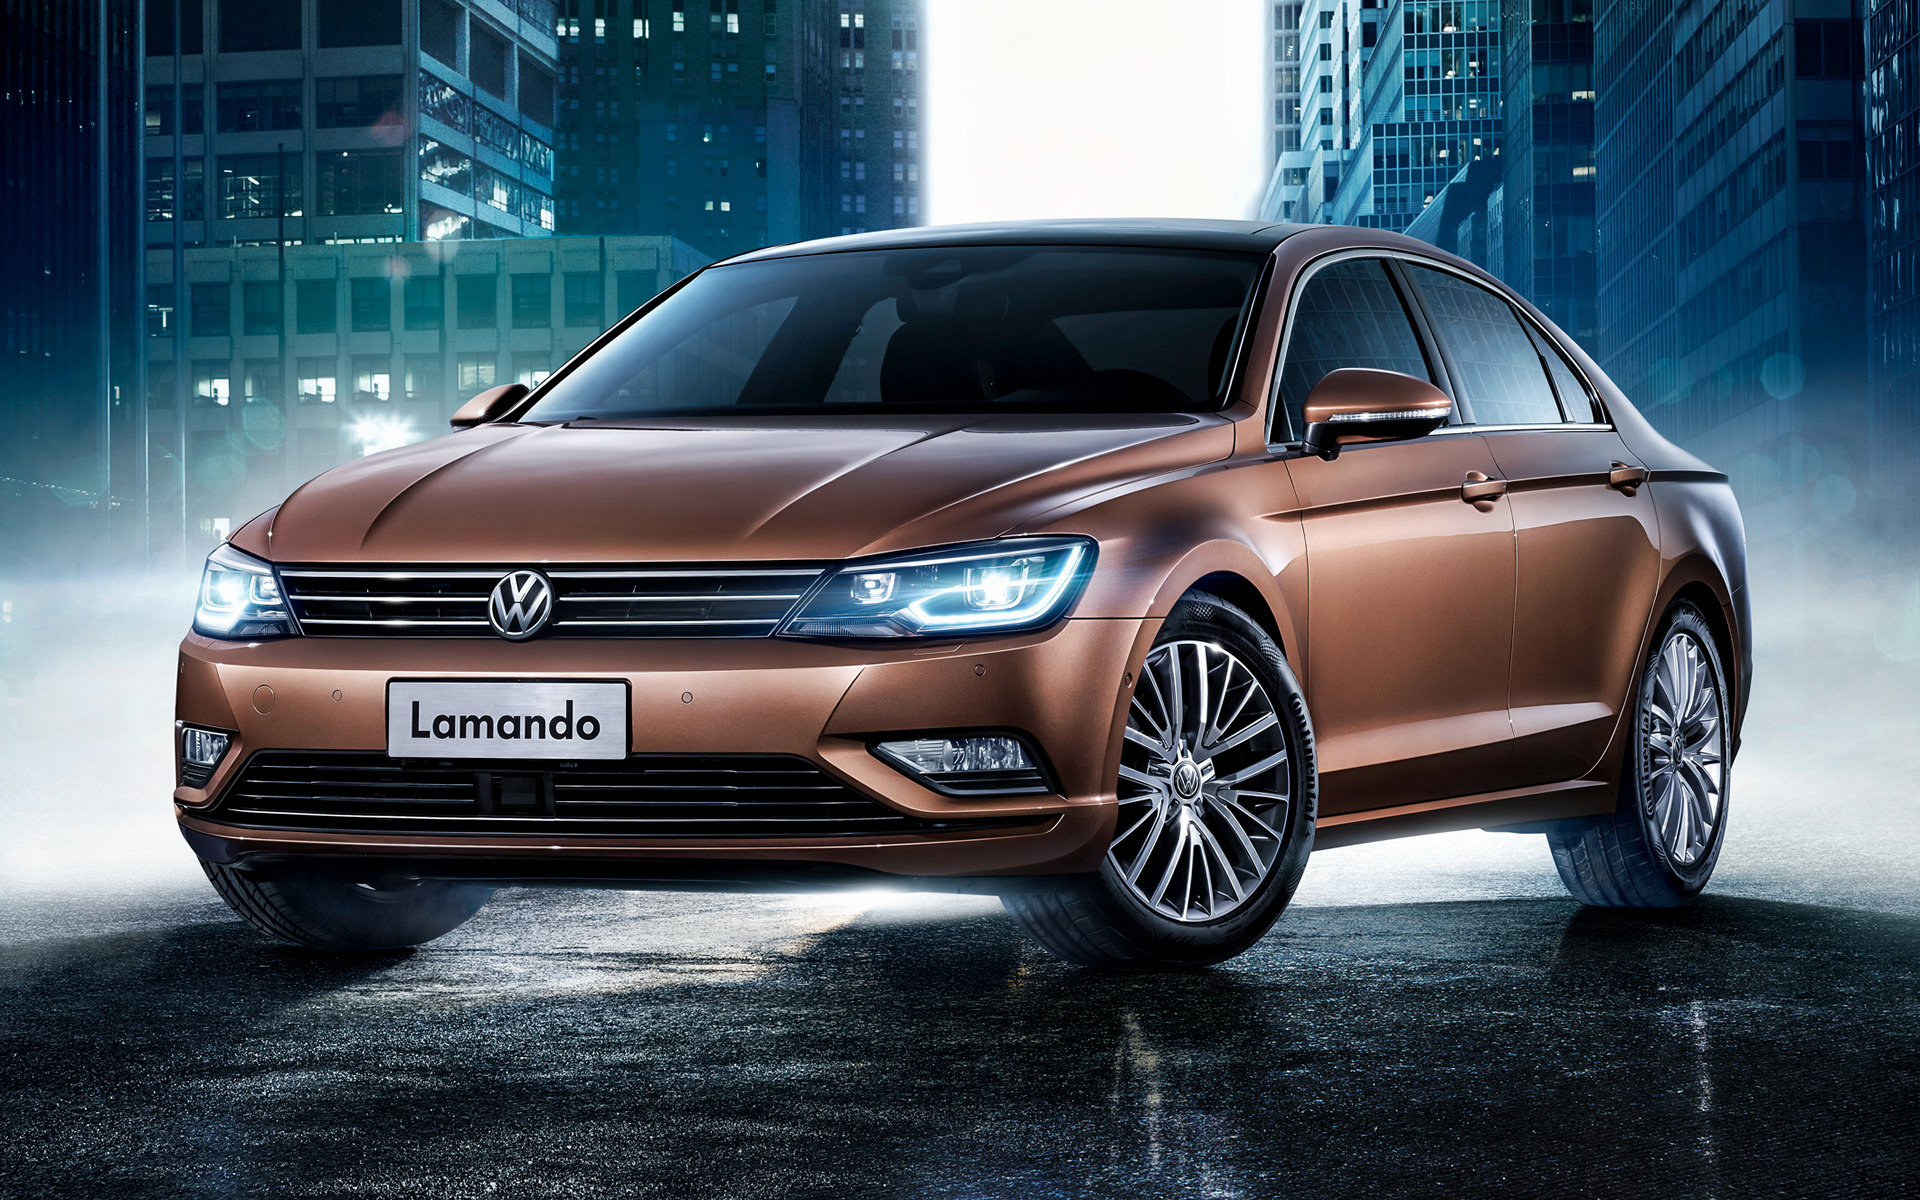 2015 Volkswagen Lamando Wallpapers And Hd Images Car Pixel